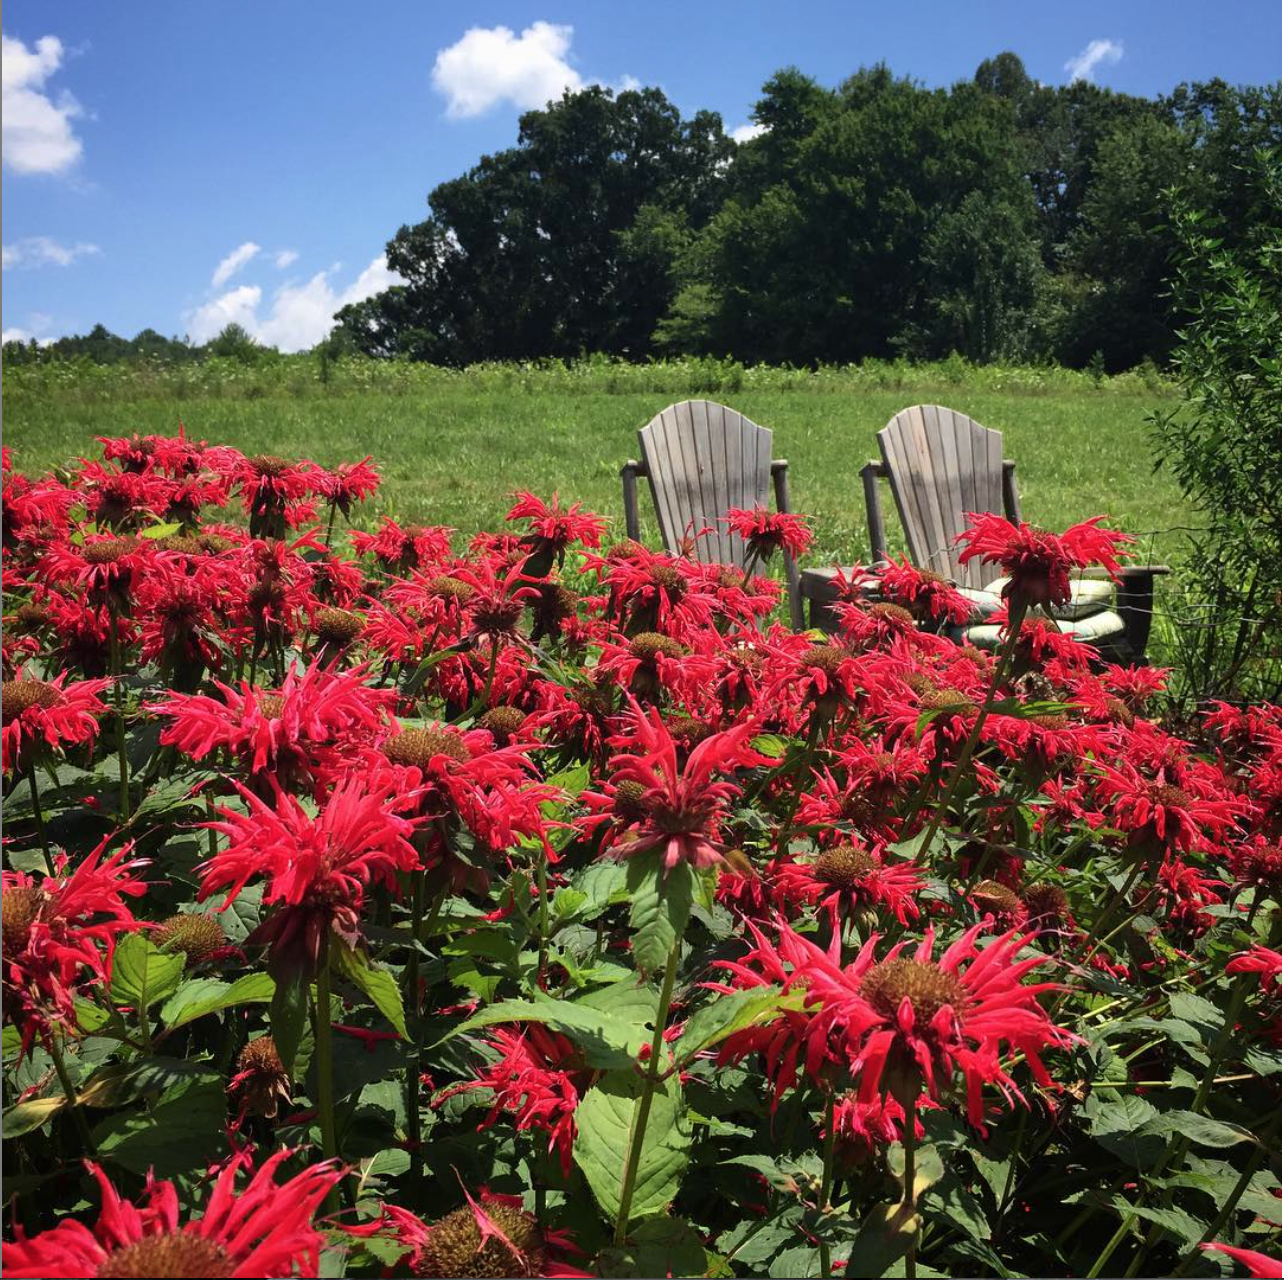 Perfect perch to watch the parade of pollinators visiting the beebalm. Hummingbird moths, bees, butterflies and hummingbirds all day long. (Monarda didyma, Lamiaceae).